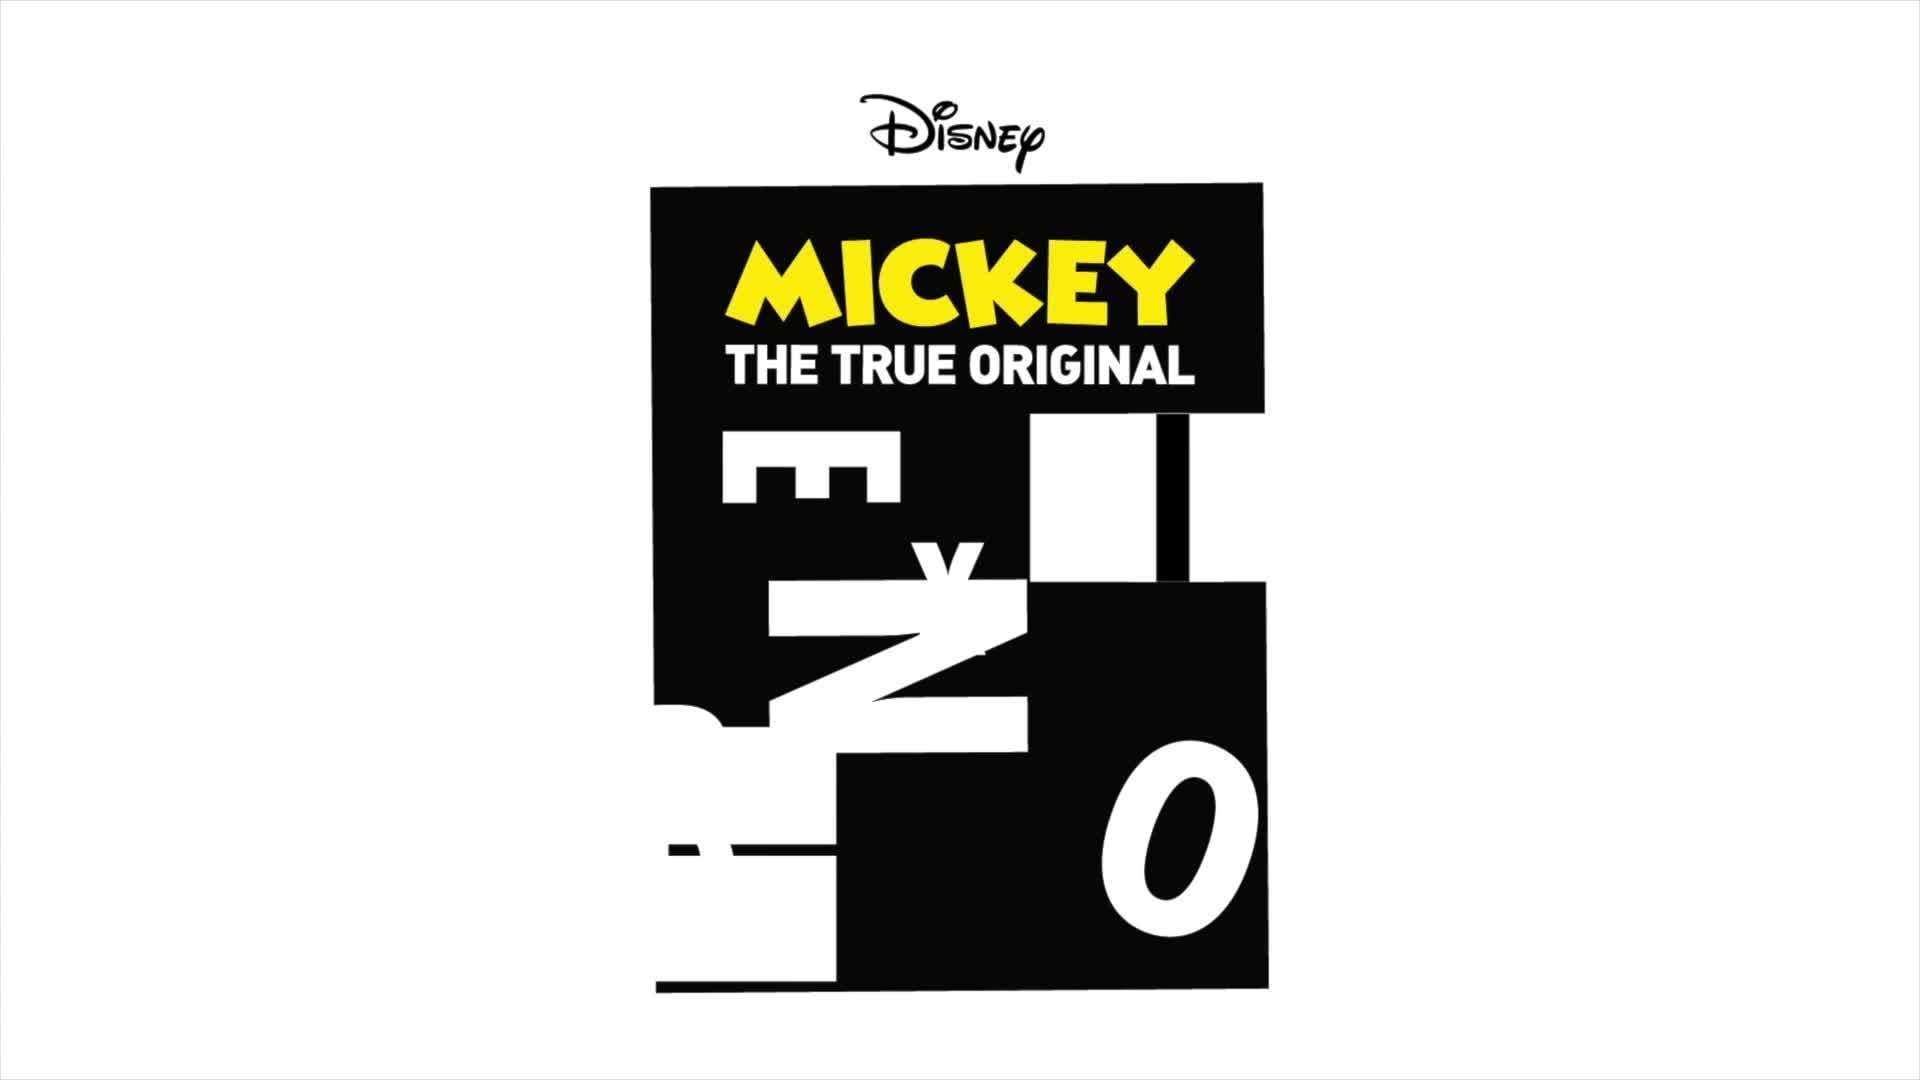 Celebrate Minnie Mouse at the Mickey: The True Original Exhibition